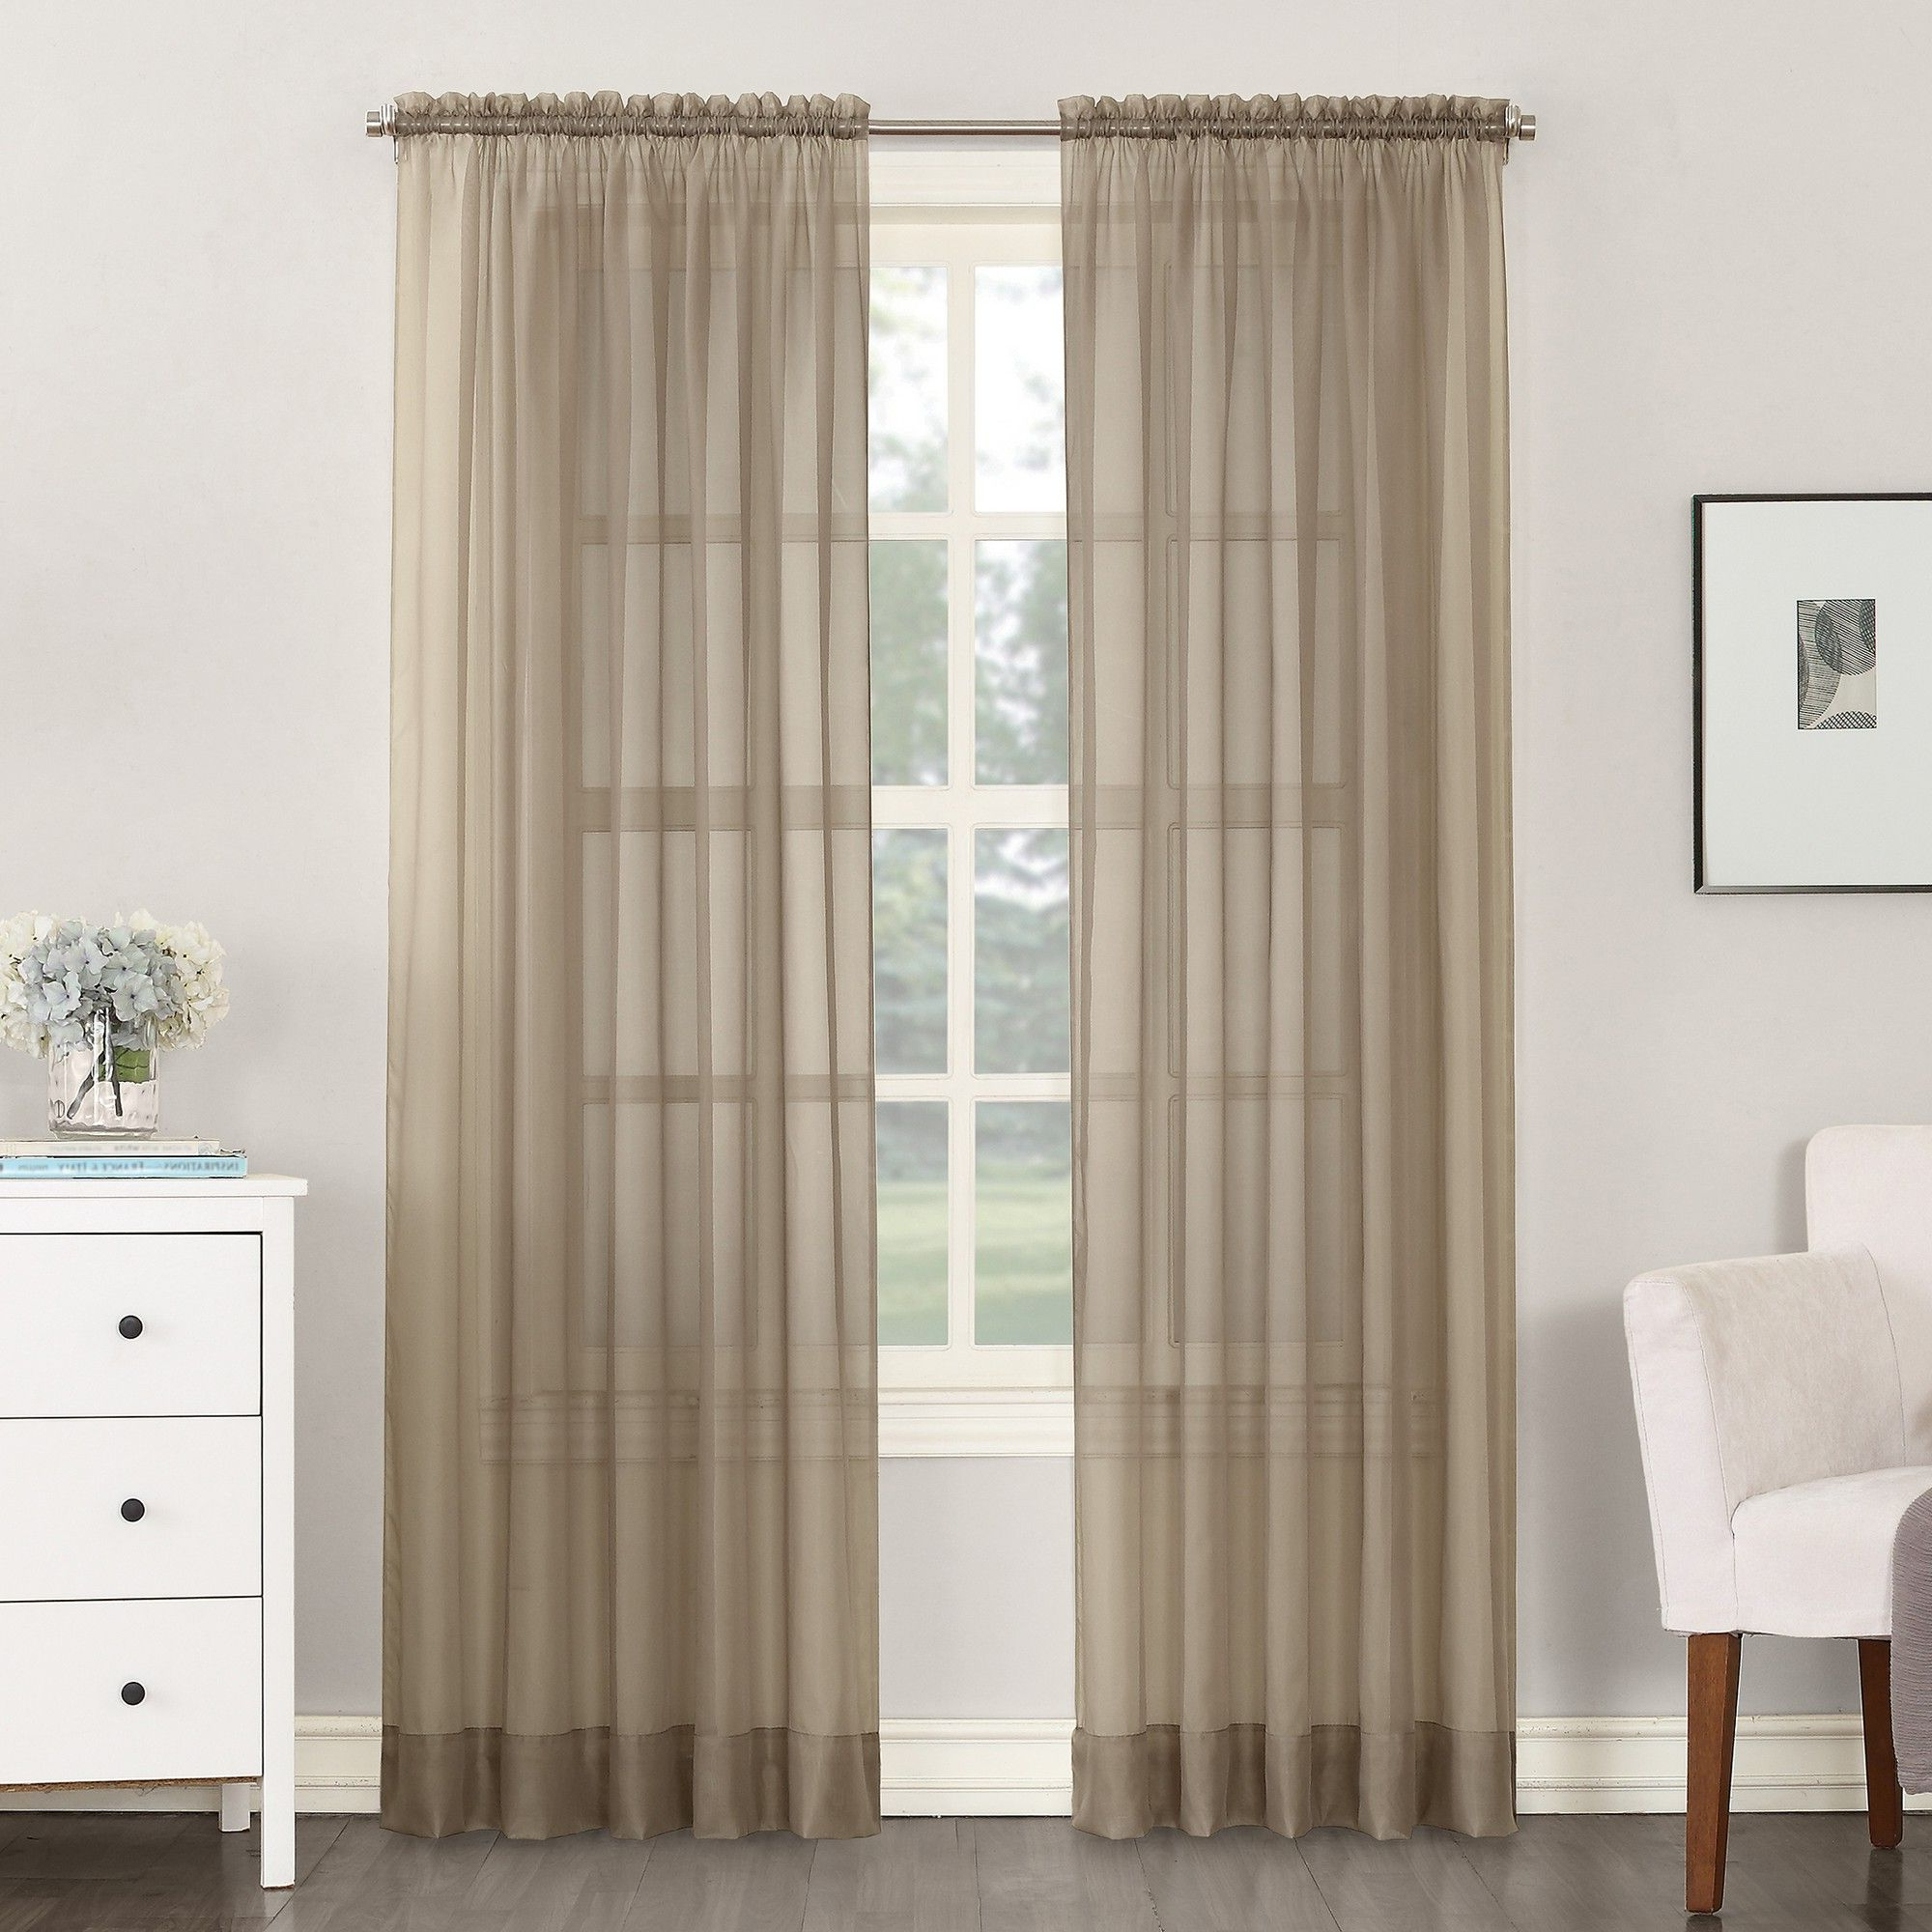 """Trendy Emily Sheer Voile Rod Pocket Curtain Panel Taupe 59""""x108 Inside Infinity Sheer Rod Pocket Curtain Panels (View 14 of 20)"""